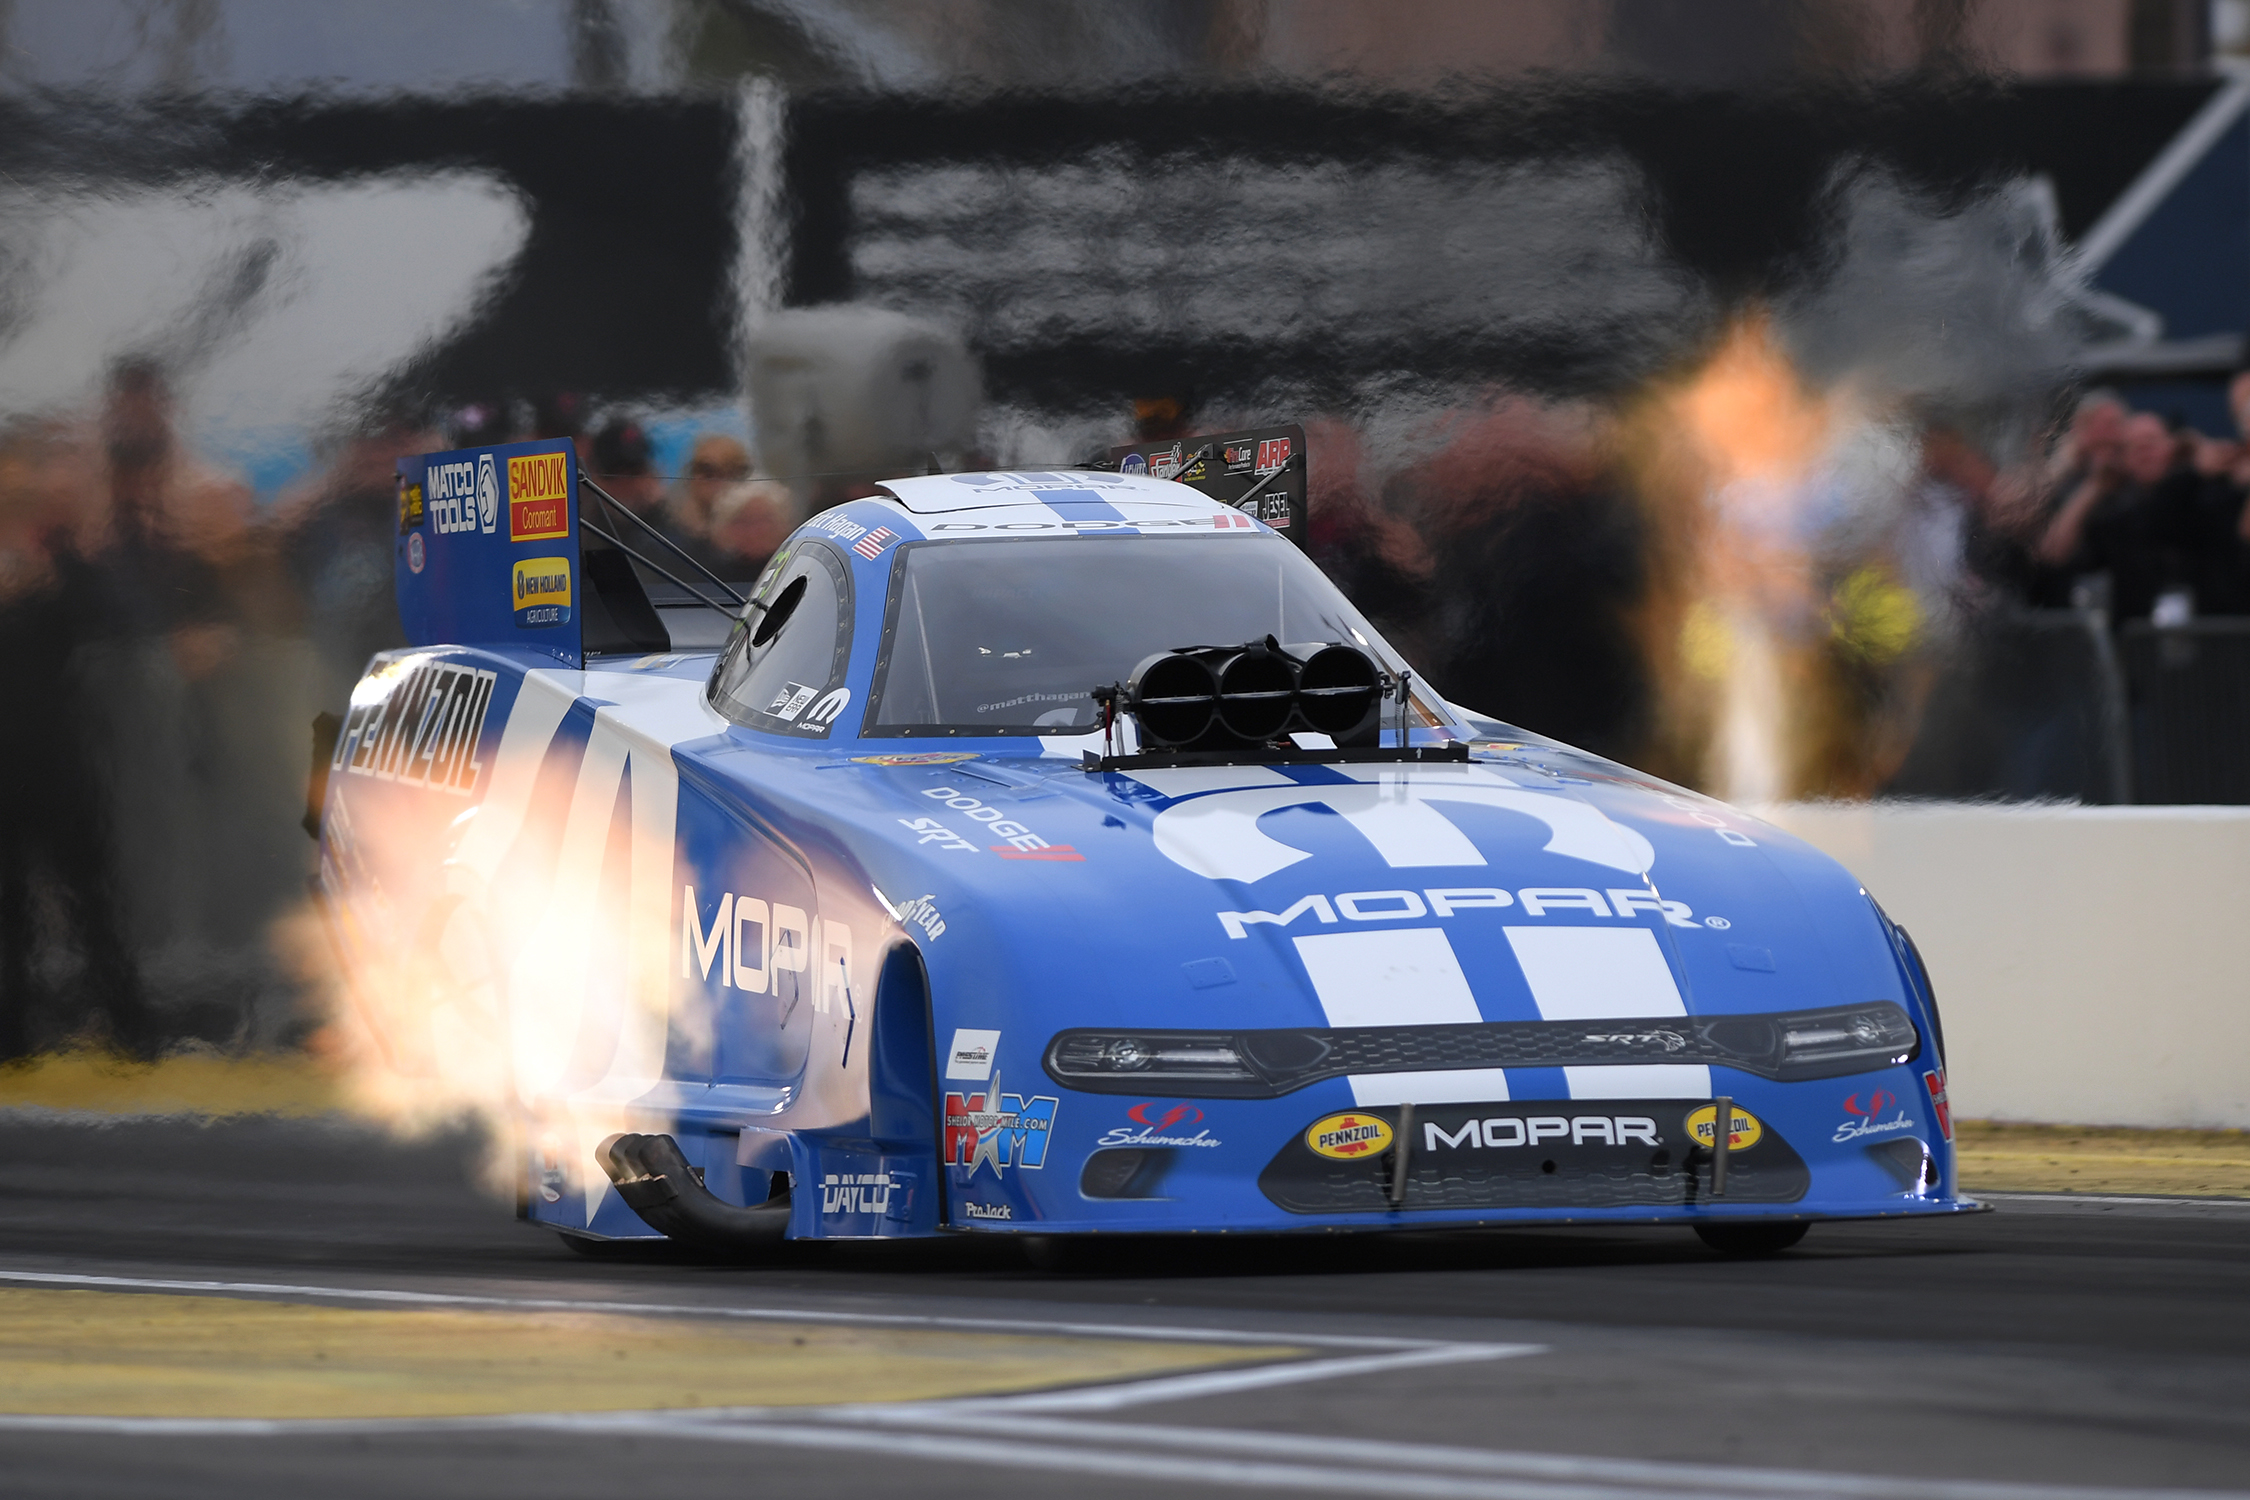 Mopar-sponsored Funny Car pilot Matt Hagan racing on Friday of the NHRA Arizona Nationals